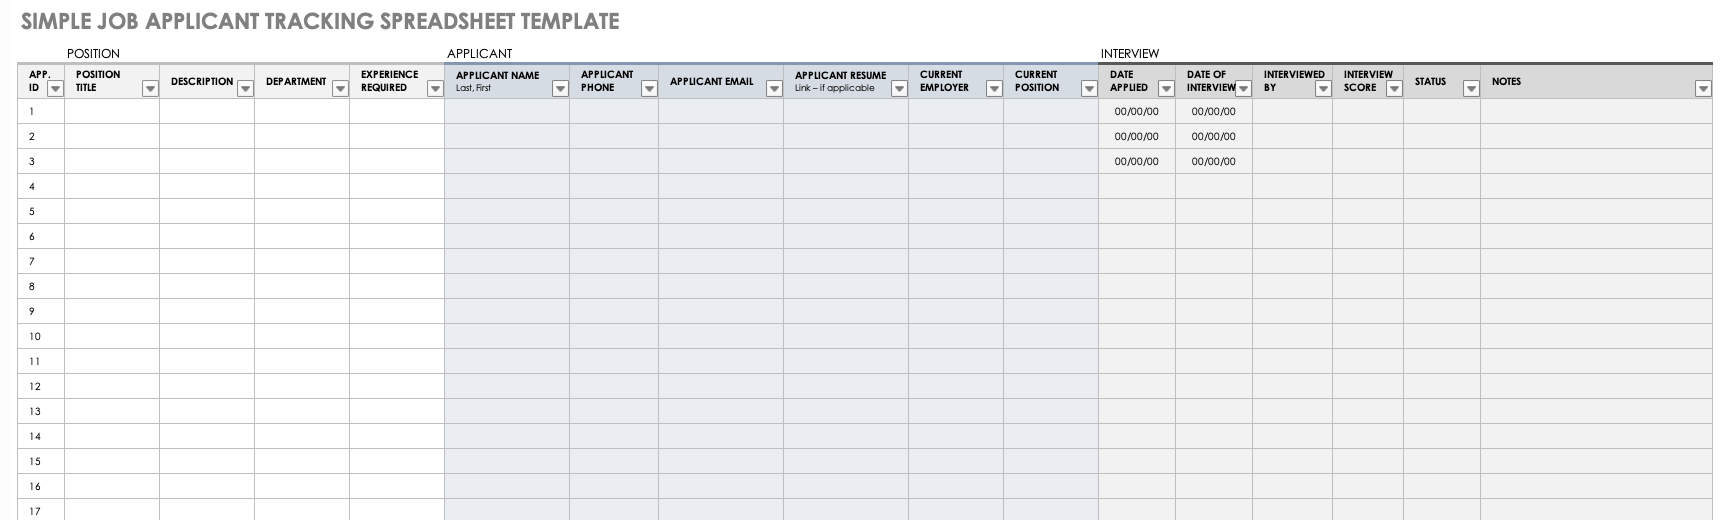 Free Applicant Tracking Spreadsheet Templates   Smartsheet